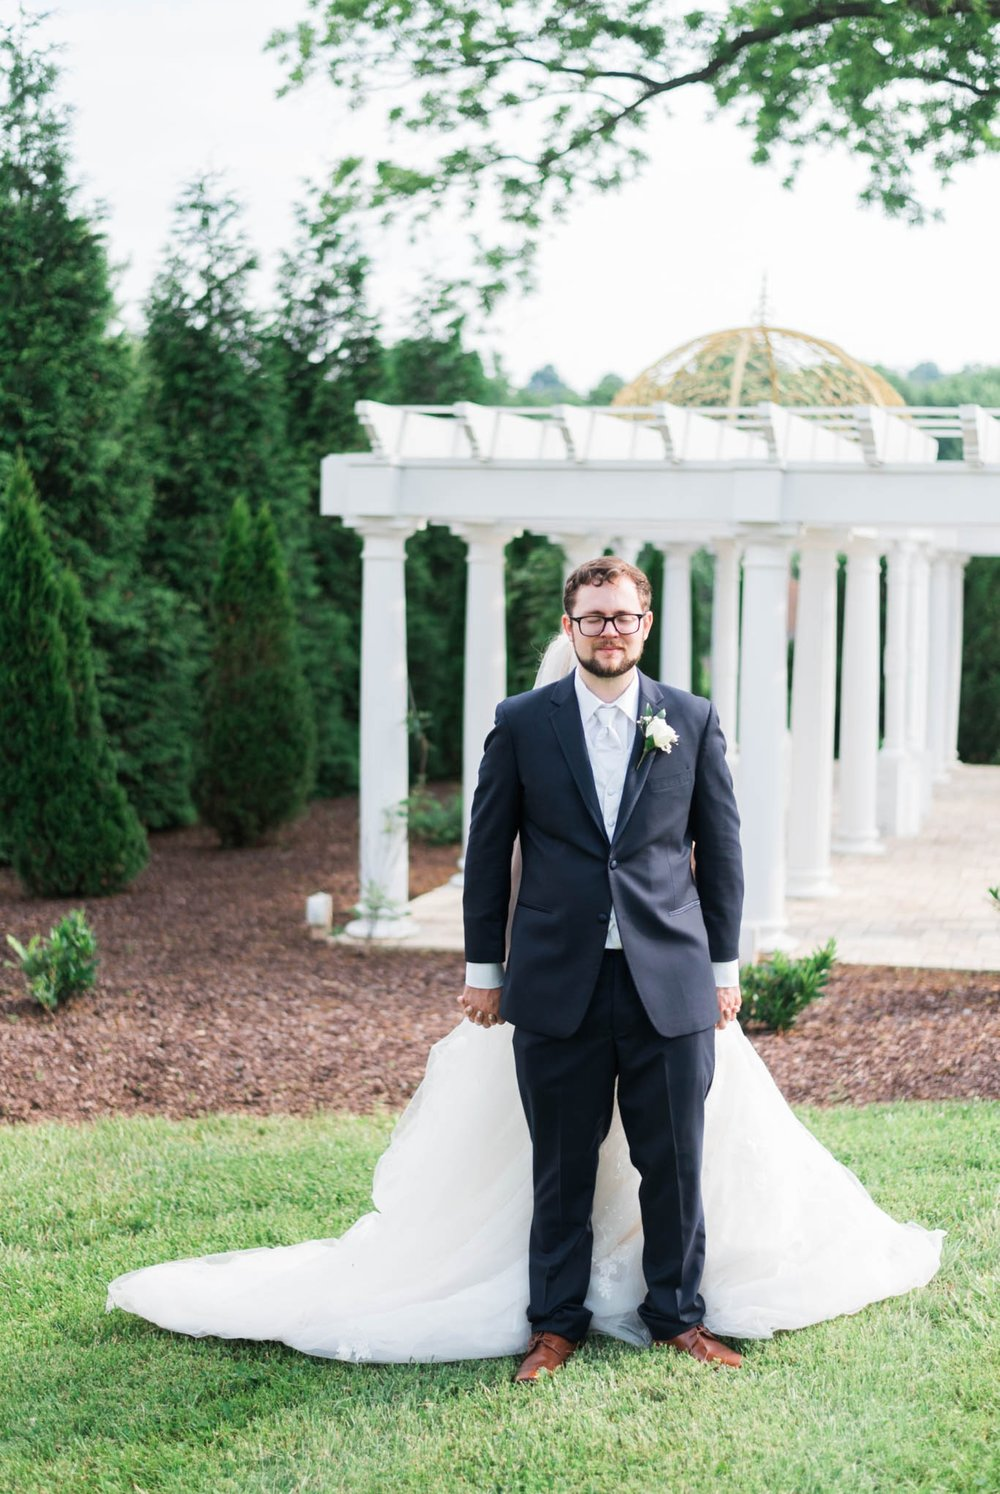 bedfordcolumns_entwinedevents_Lynchburgweddingphotographer_virginiaweddingphotographer_tarahlaunce 24.jpg